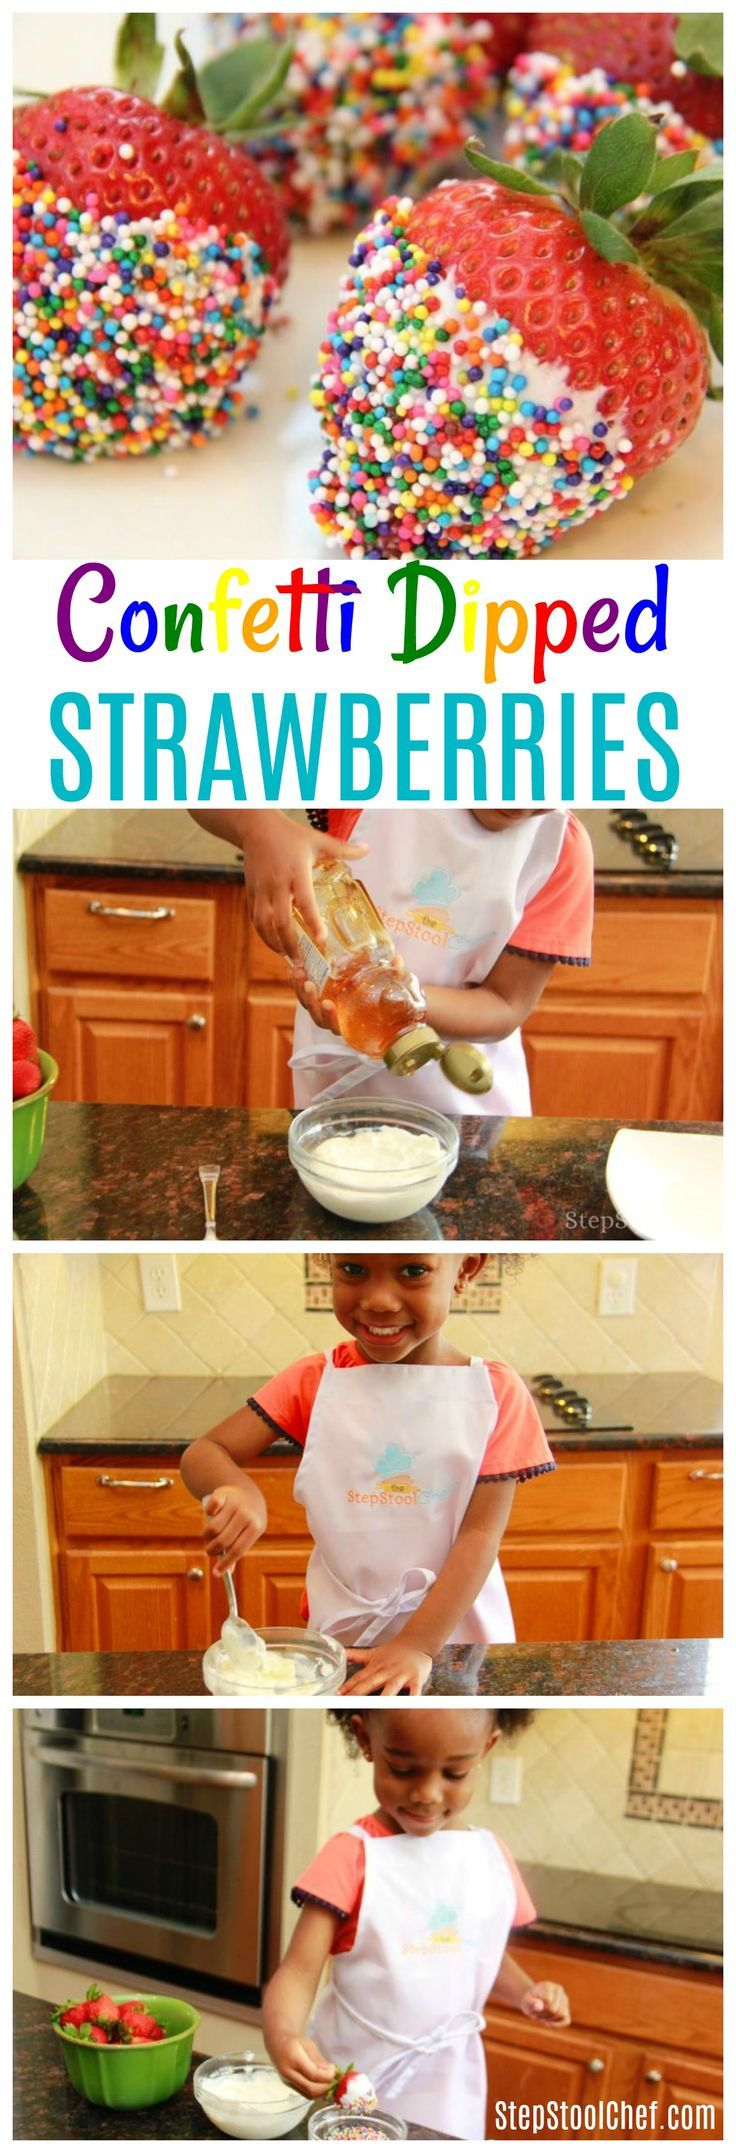 Confetti Dipped Strawberries: Fun & Easy Recipe for Kids to Make | The Step Stool Chef